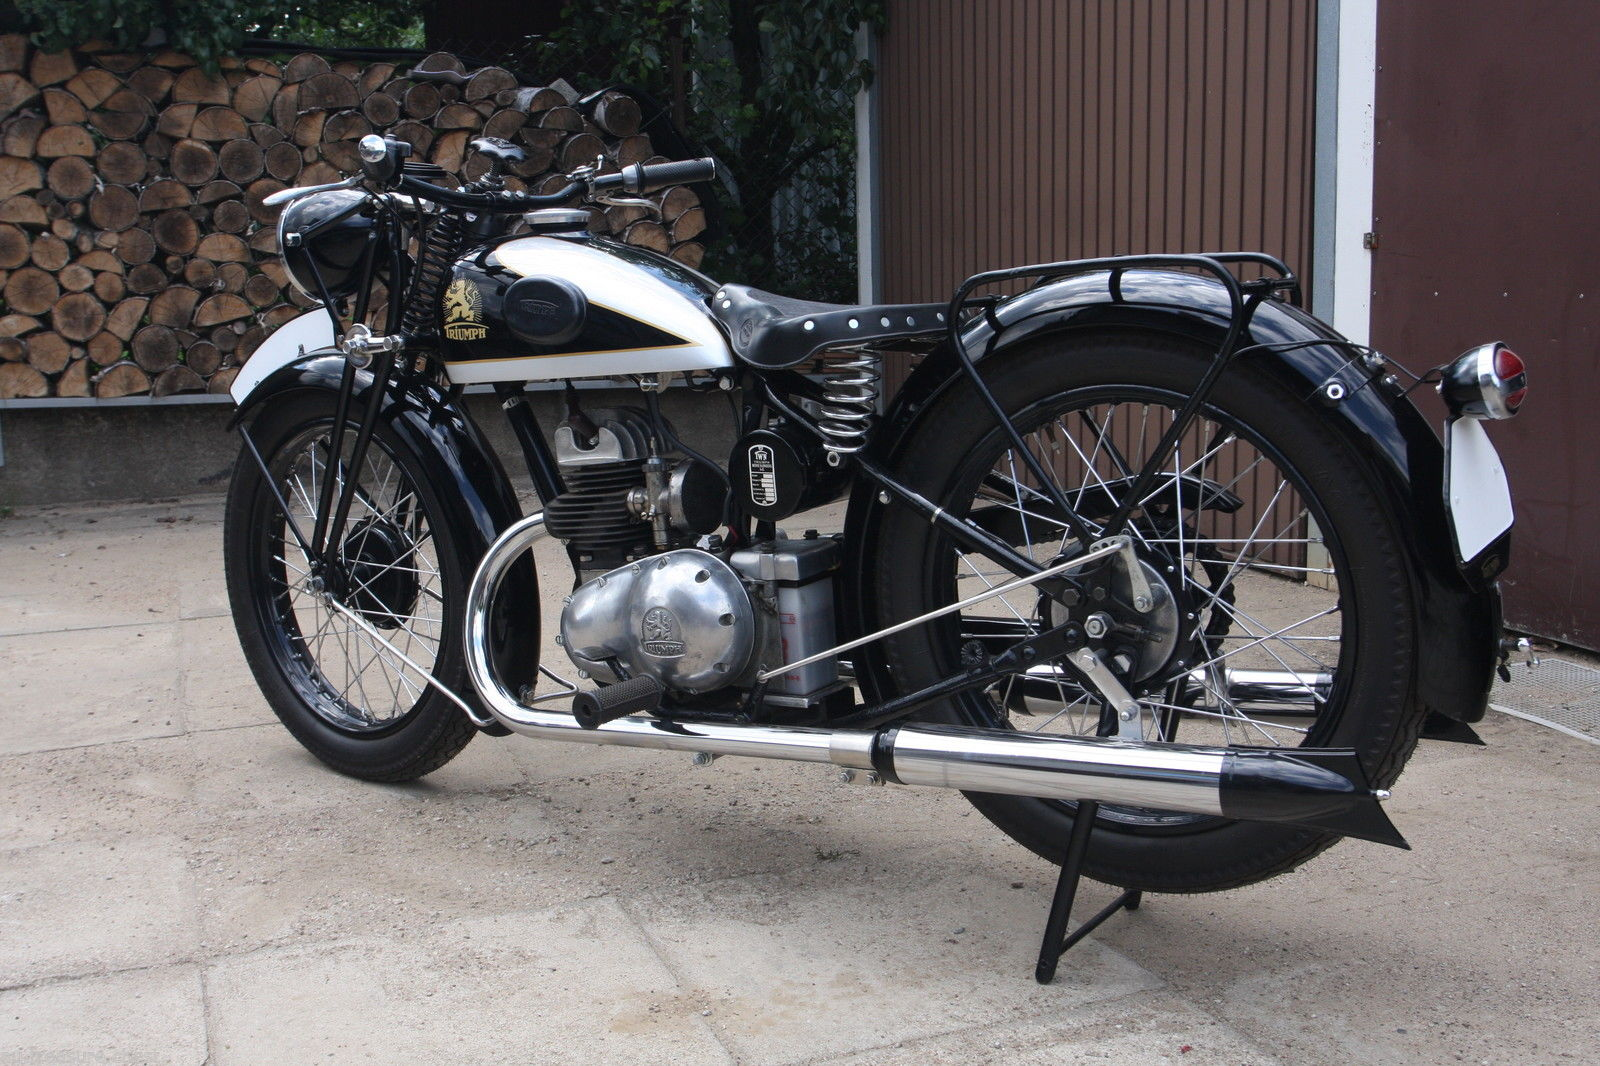 The German TWN motorcycles are distinctive and well made.